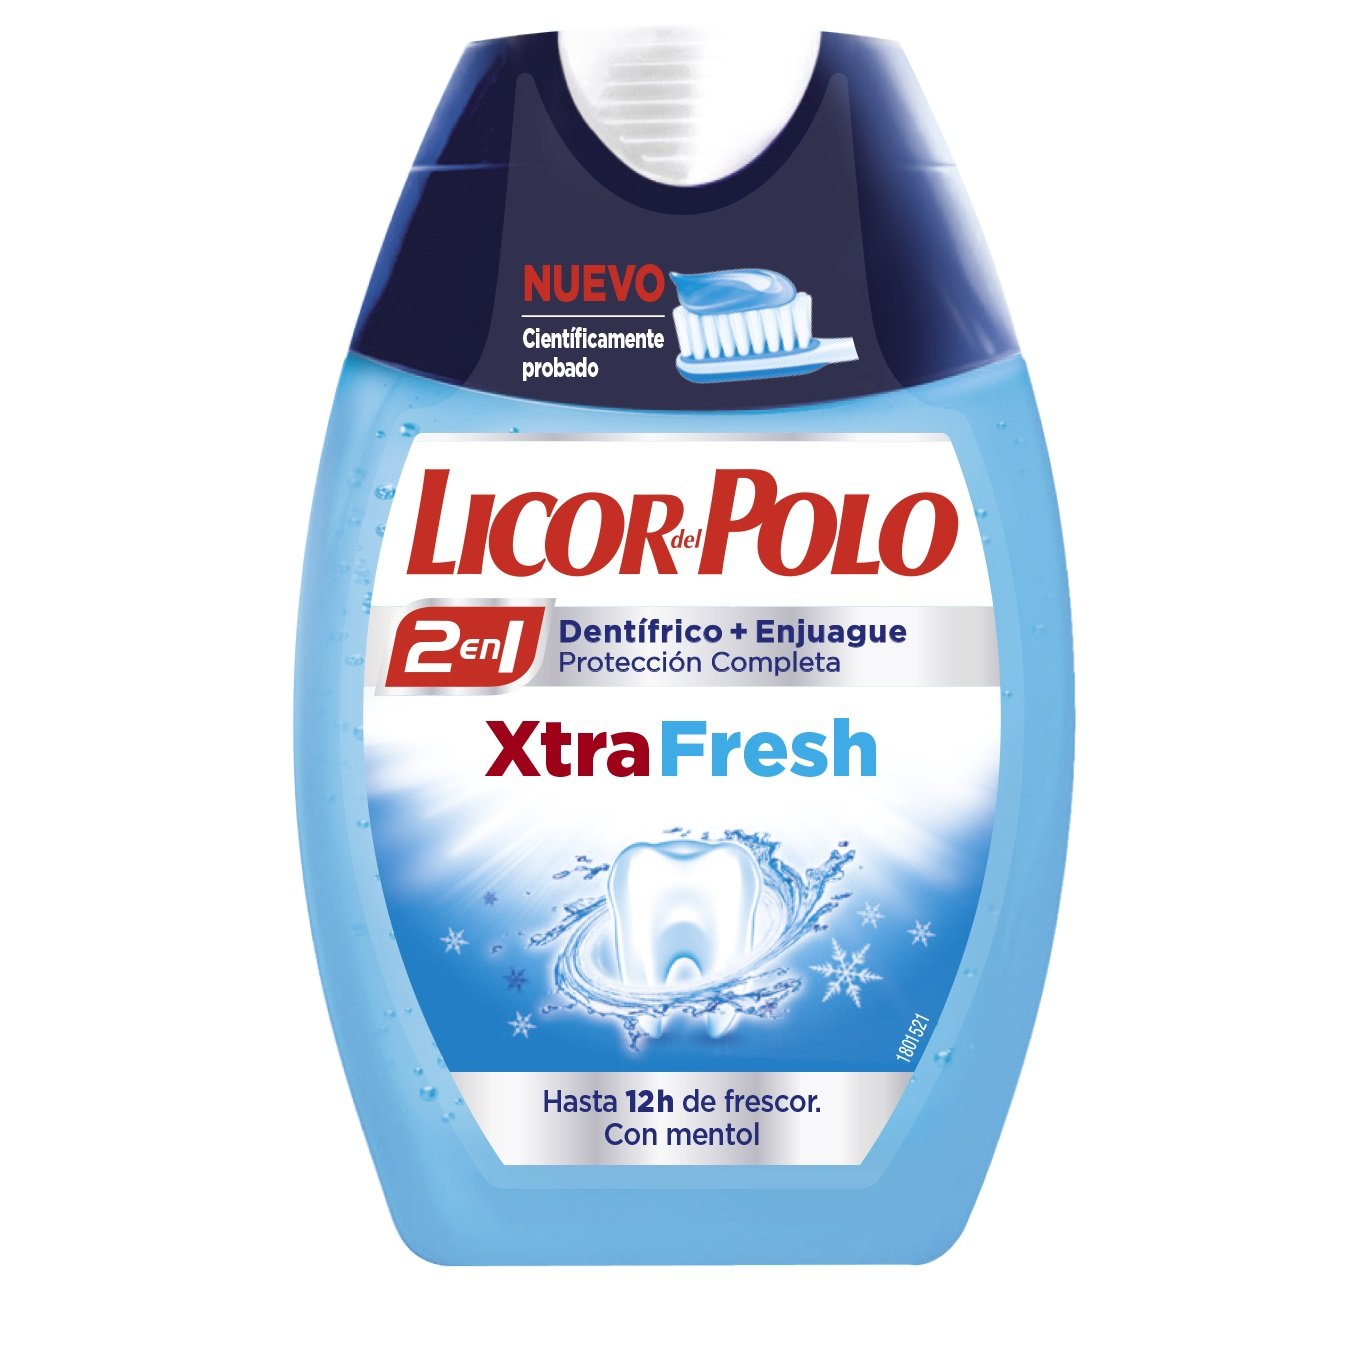 Liccor del Polo XtraFresh Dentífrico 2 en 1-75 ml: Amazon.es ...